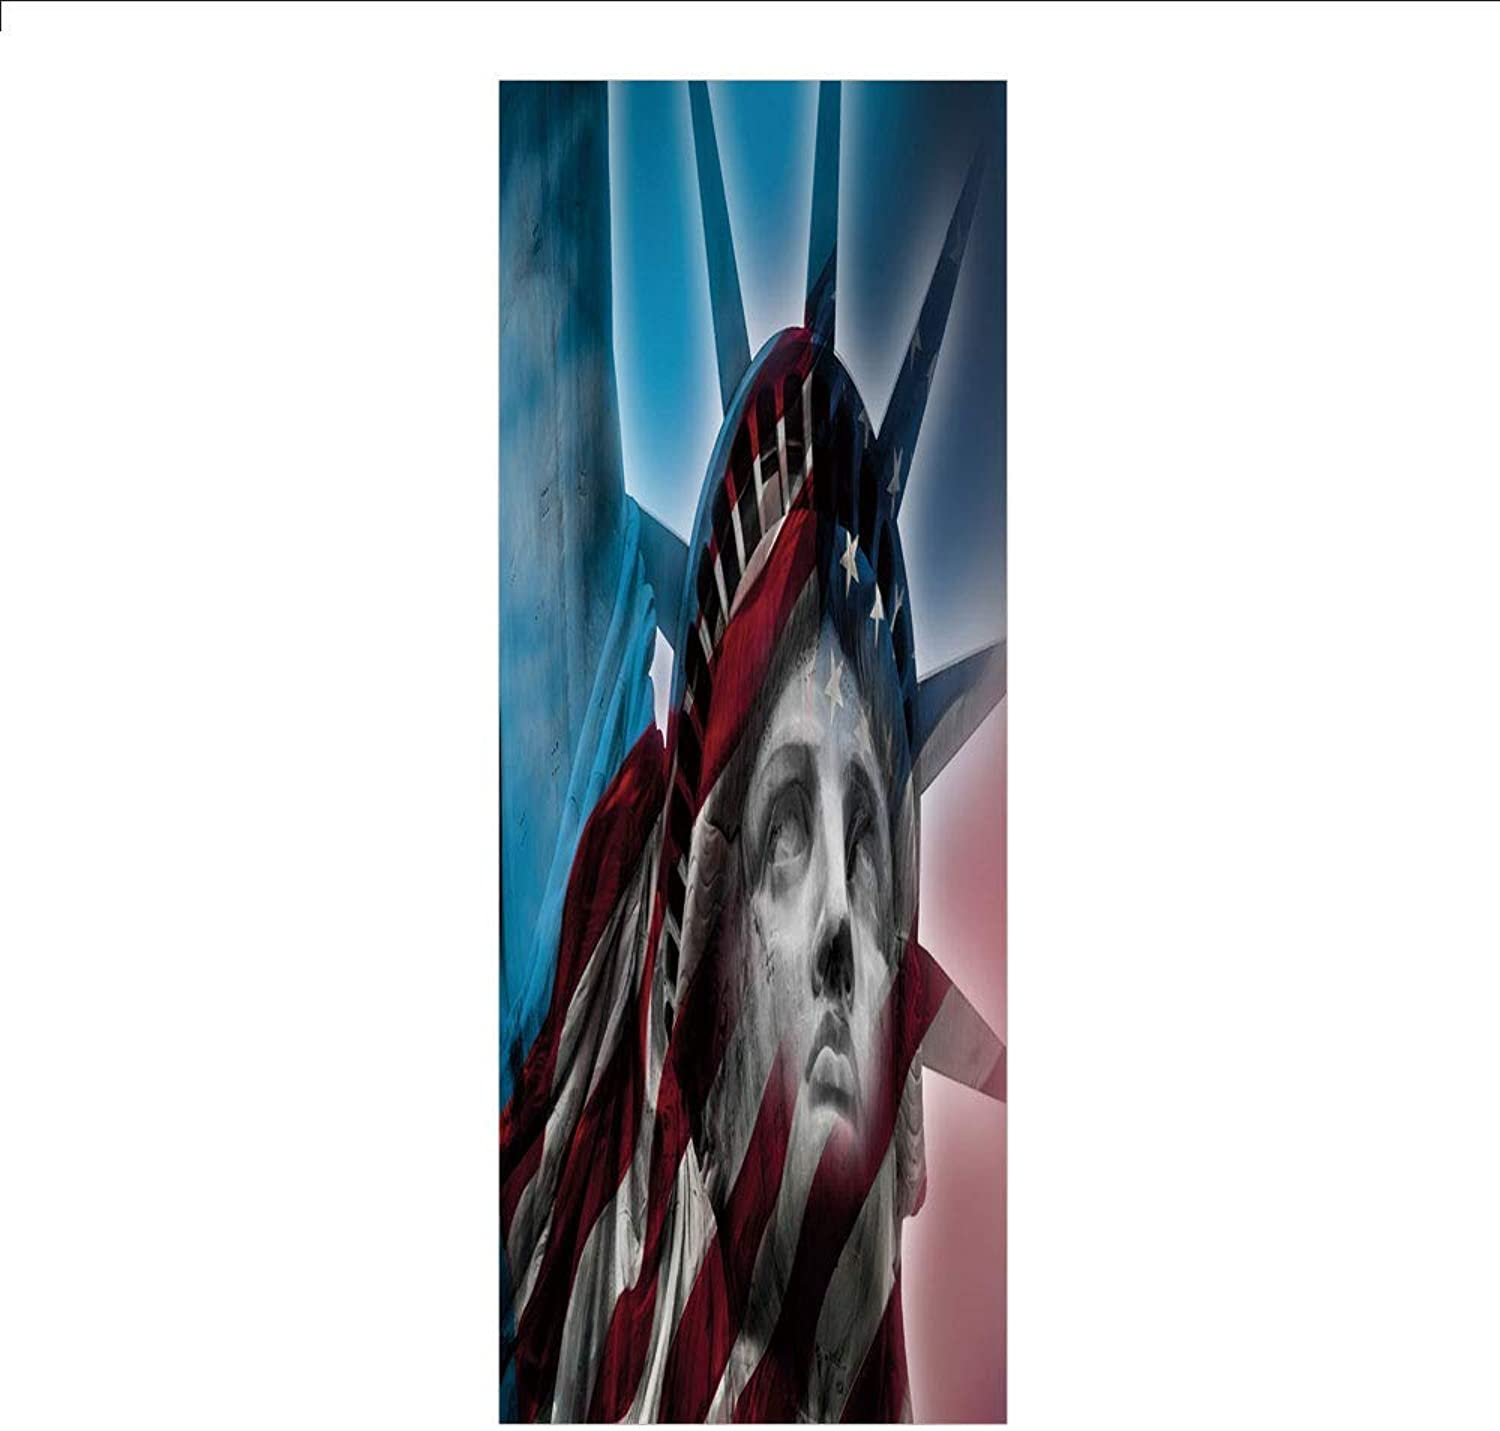 Yaoni 3D Decorative Film Privacy Window Film No Glue,United States,Statue of Liberty and American Flag Double Exposure Justice Democracy Freedom Decorative,Multicolor,for Home&Office